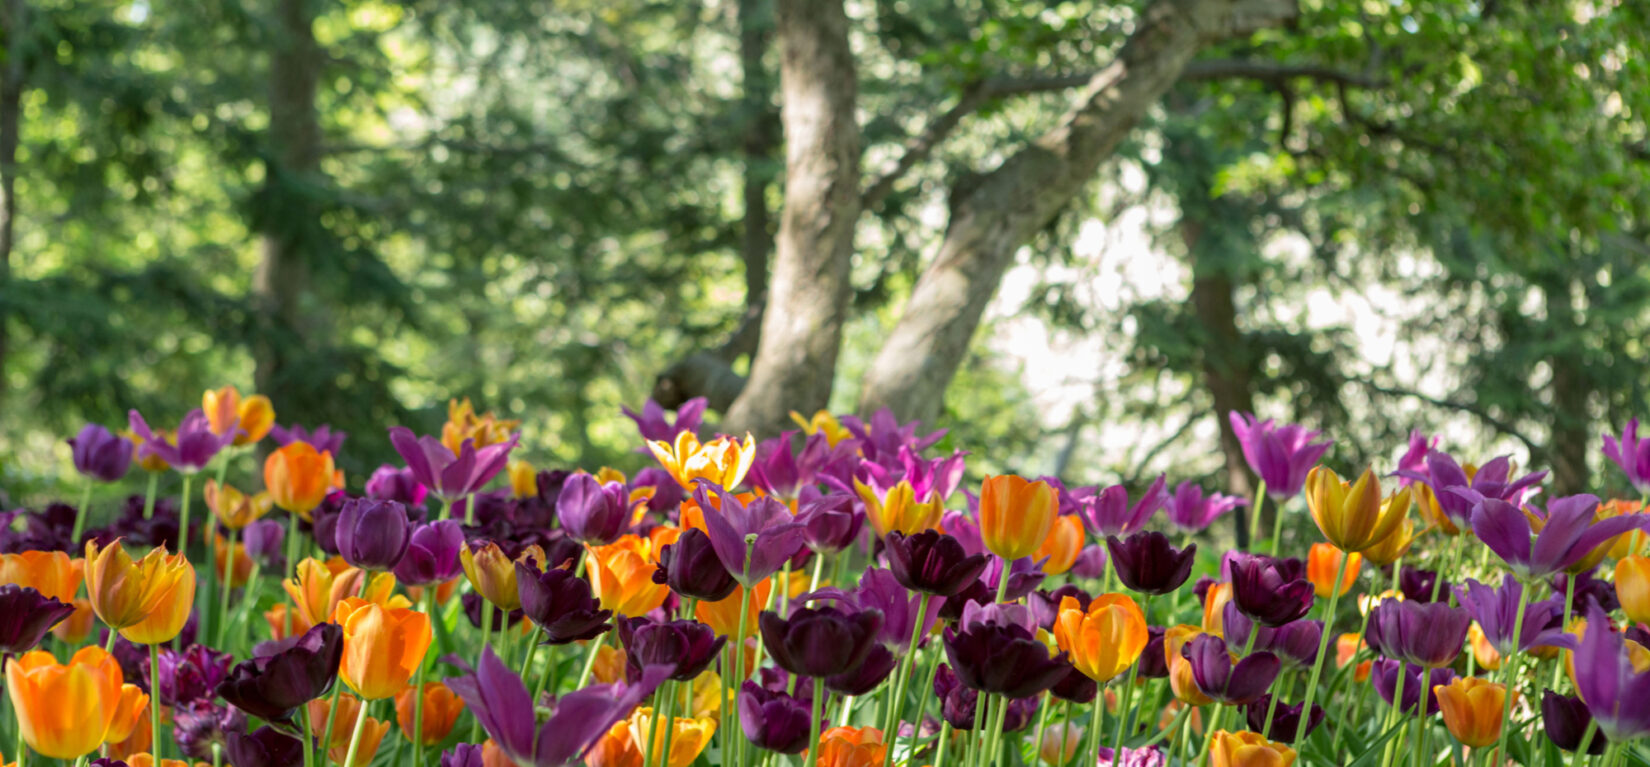 The colorful blooms of Shakespeare Garden